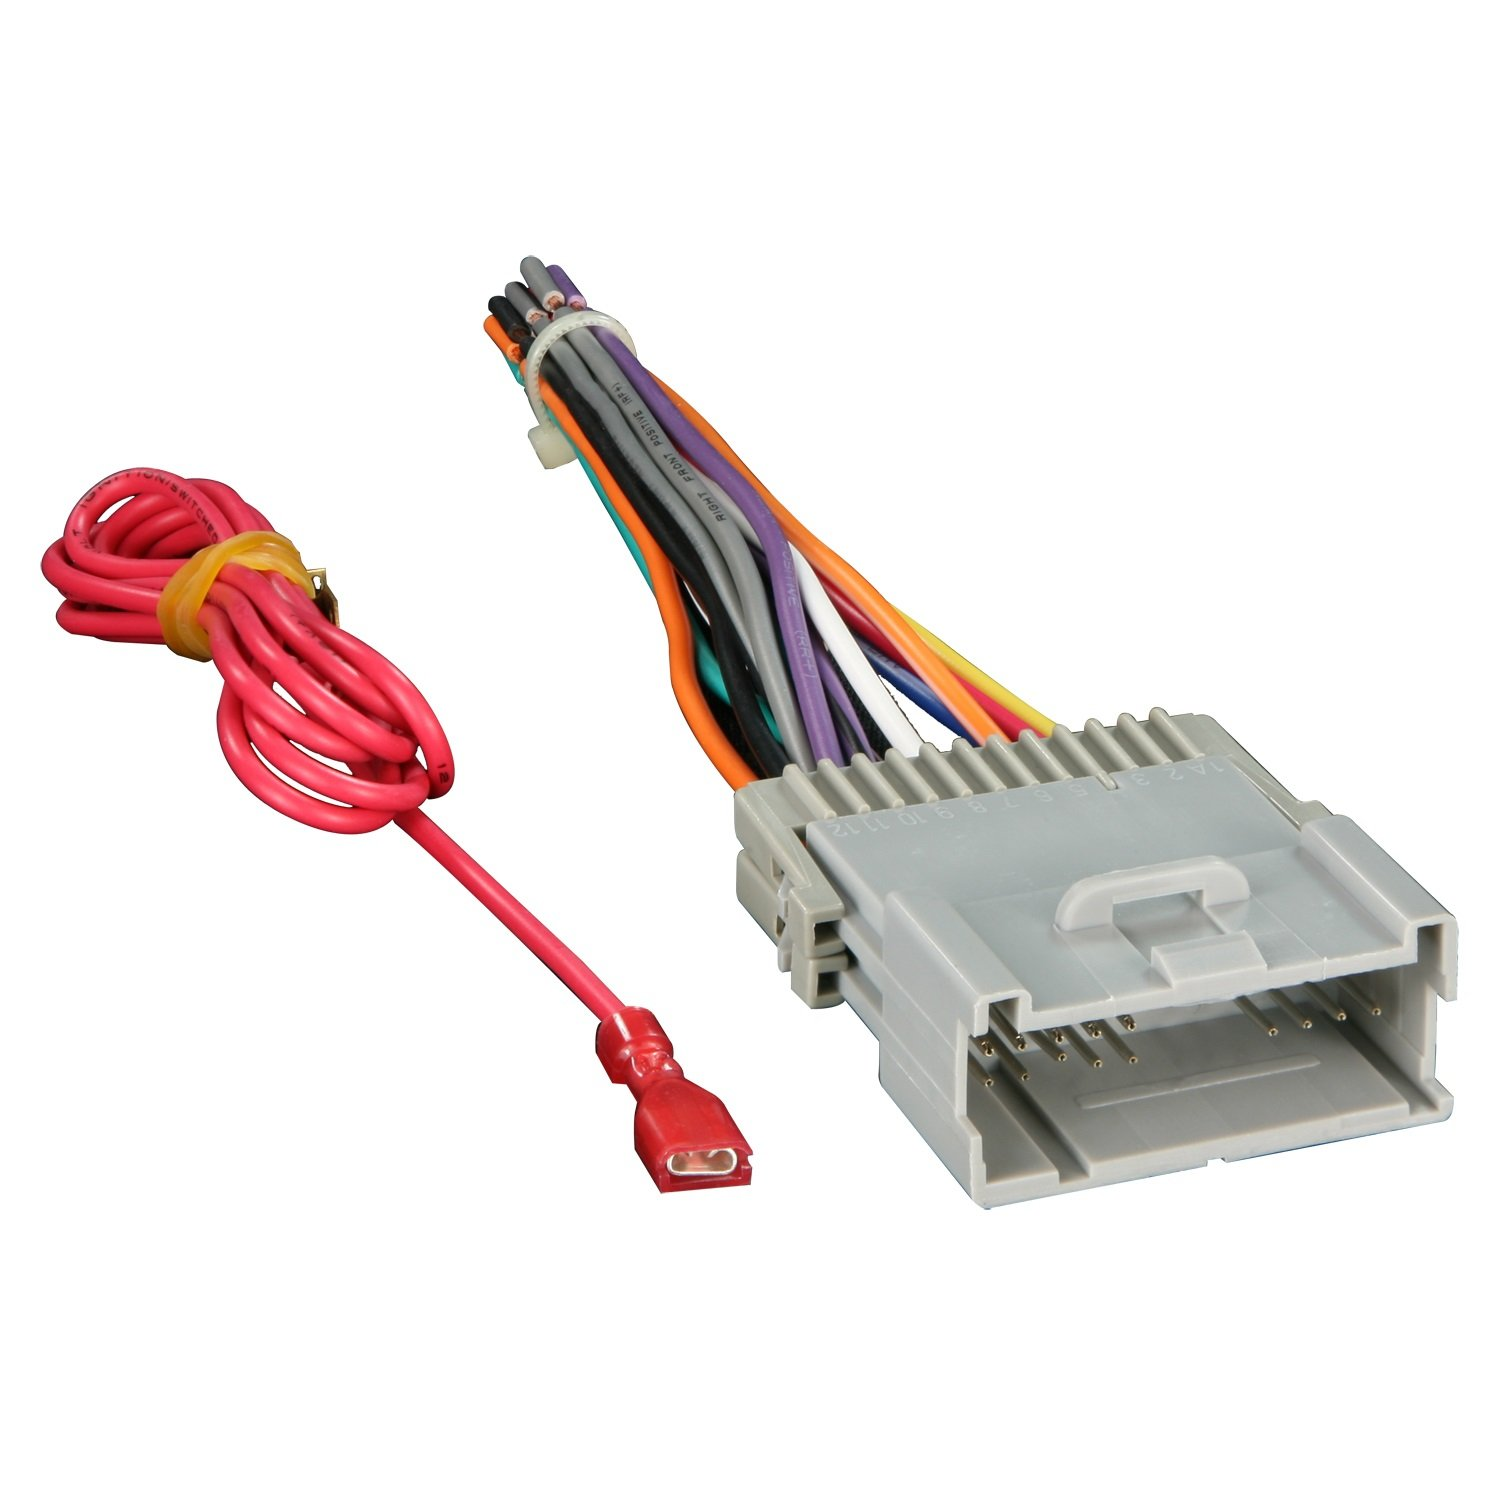 61eewxp9orL._SL1500_ amazon com metra 70 2003 radio wiring harness for gm 98 08 2006 Chevy Impala at mr168.co